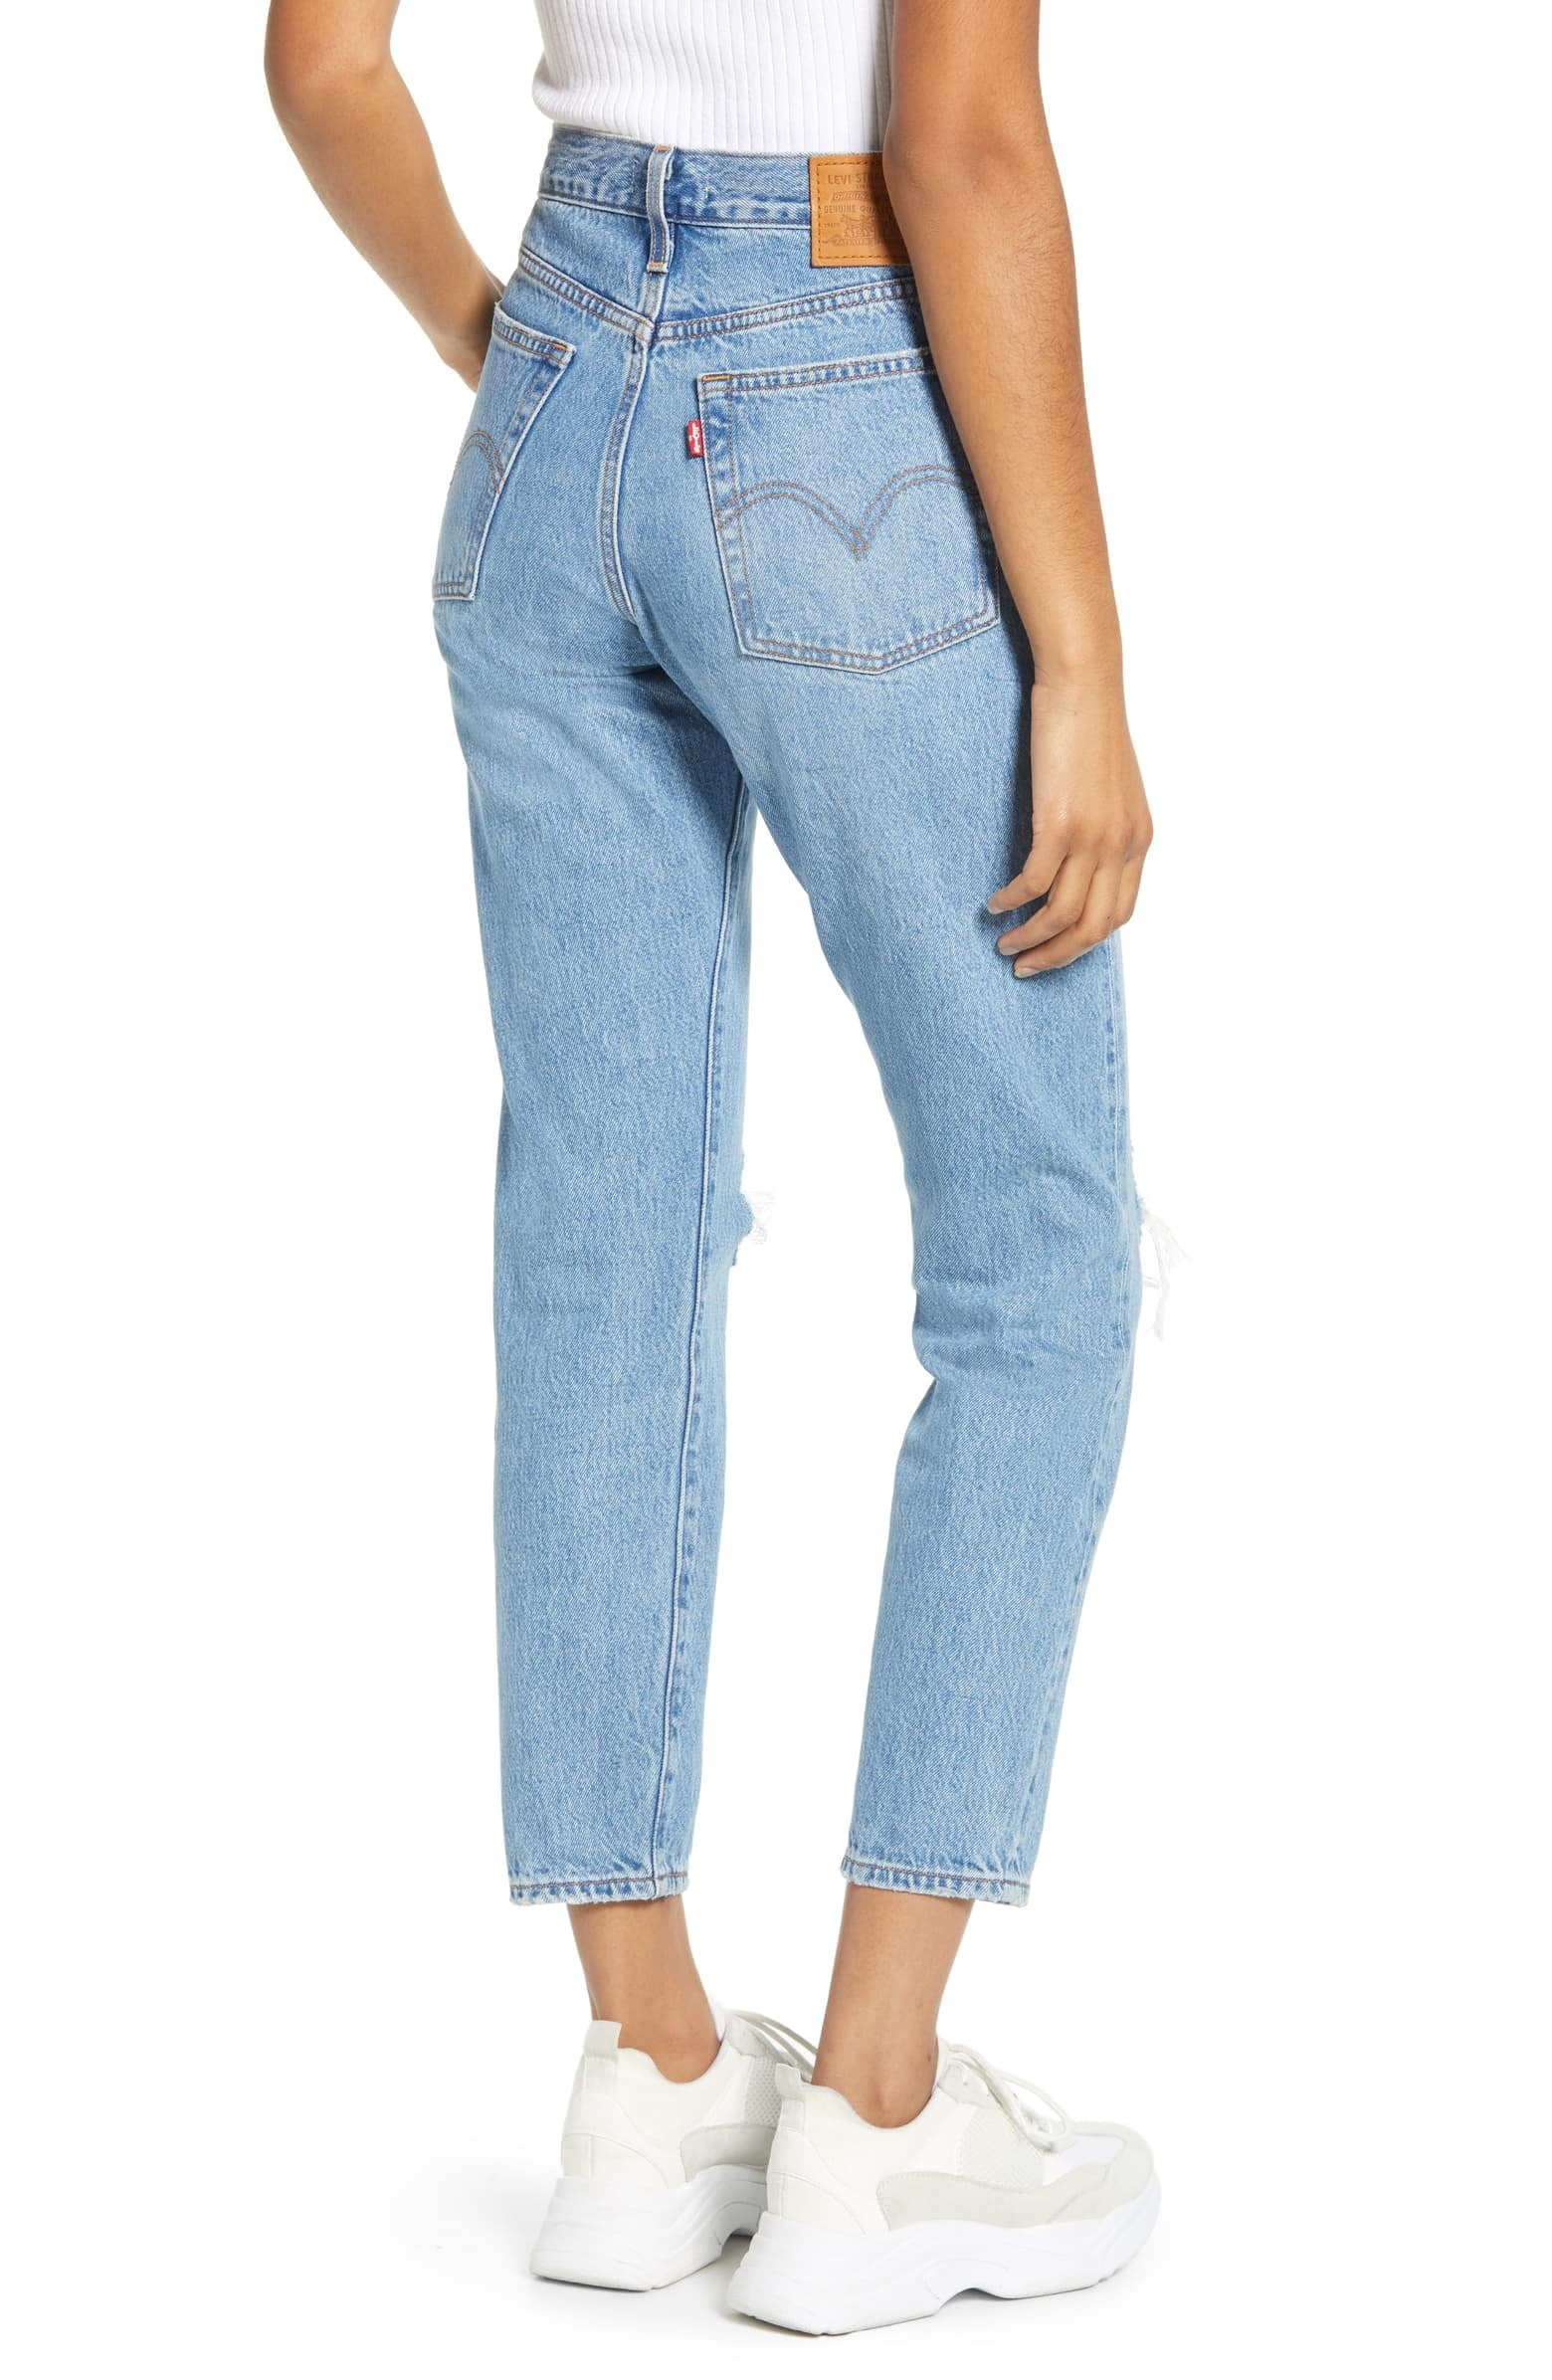 Best Jeans For All Women 2020 Guide Popsugar Fashion Explore the available details in our. best jeans for all women 2020 guide